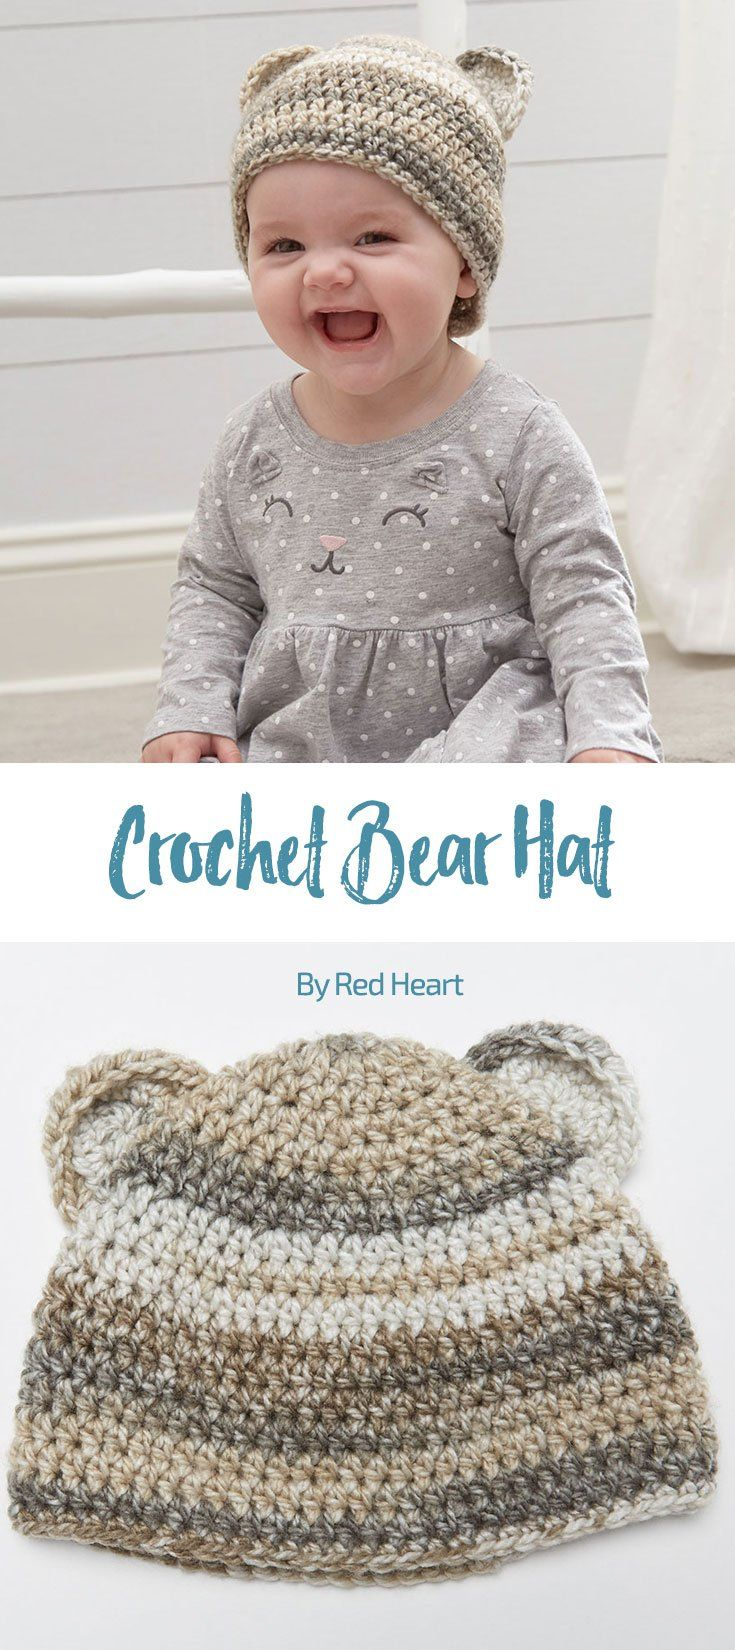 Crochet Bear Hat free crochet pattern in Hopscotch. | crochet ...